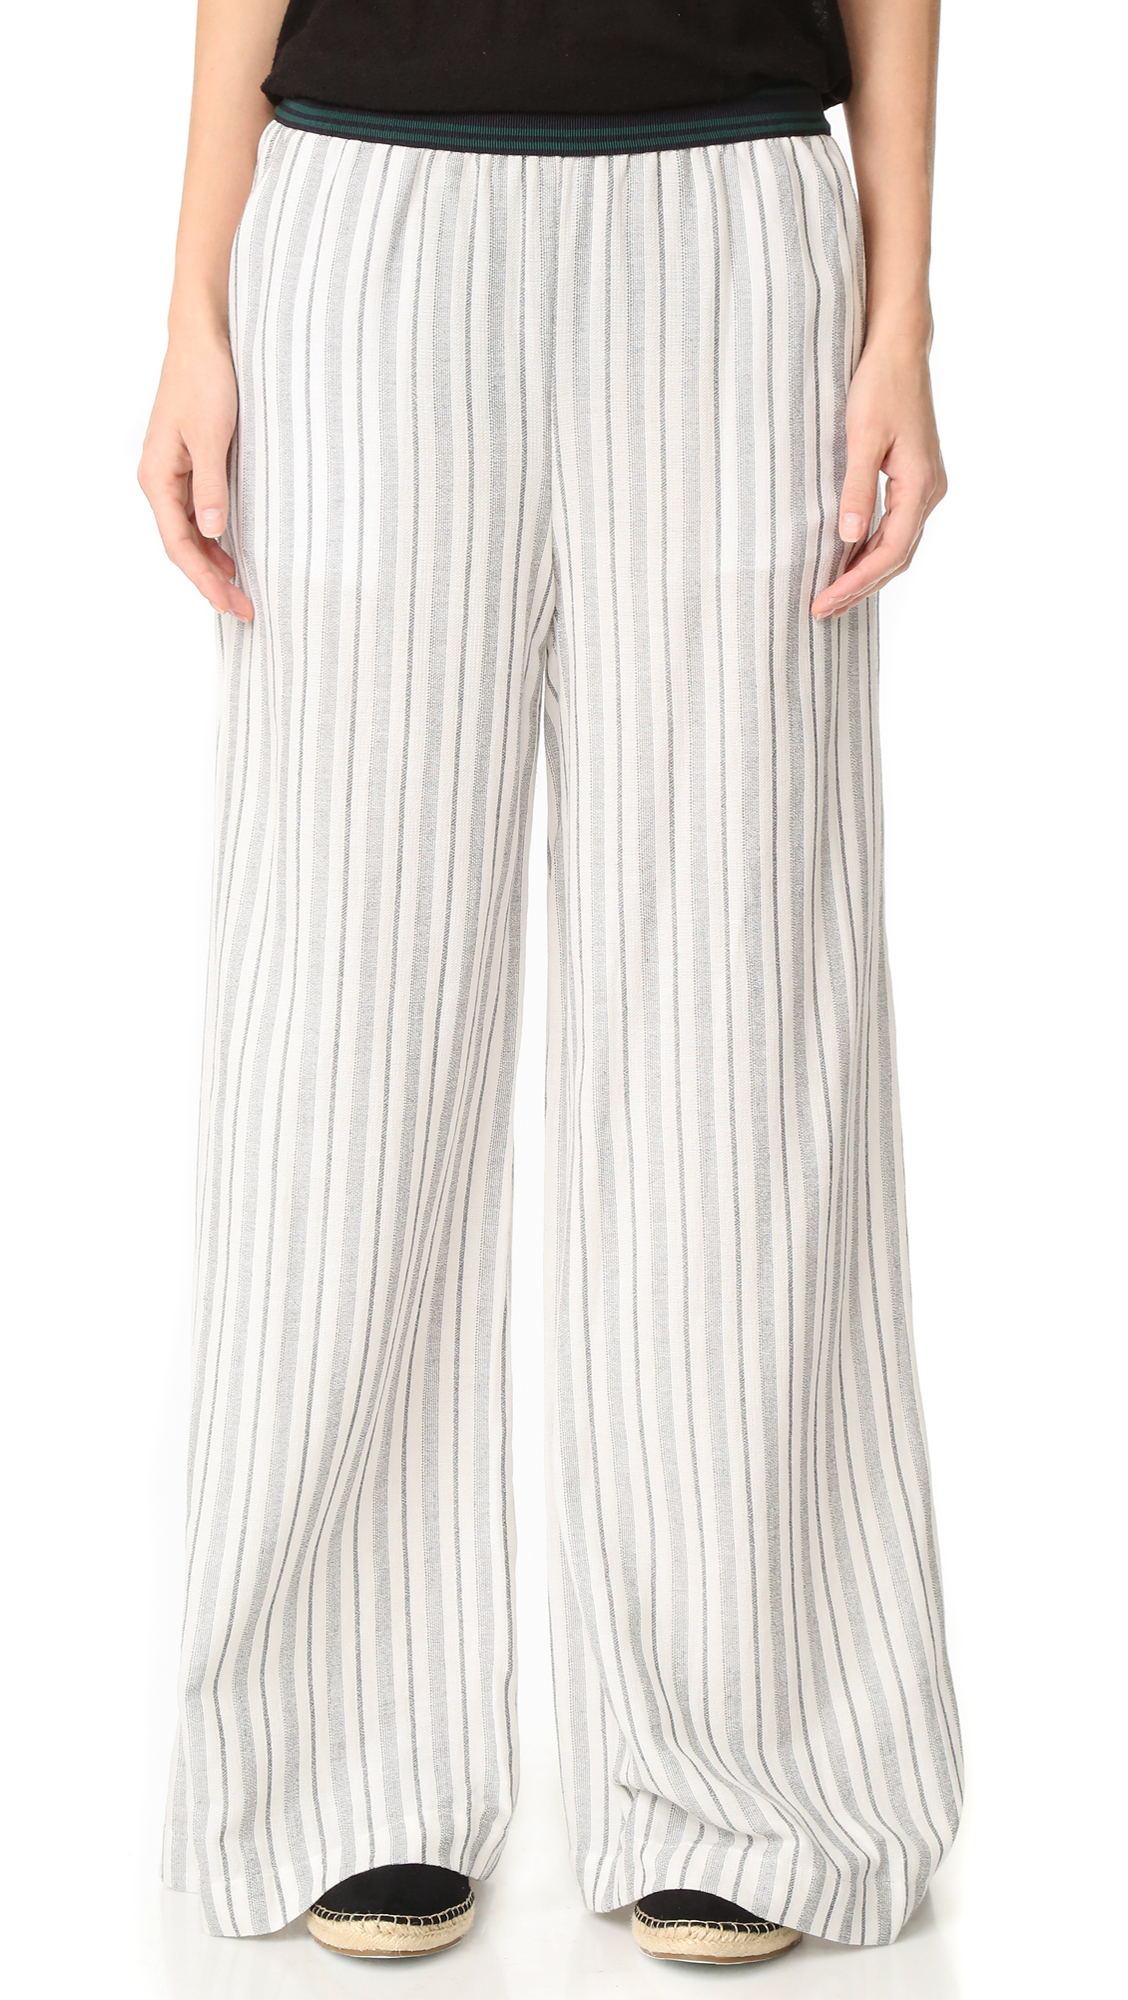 Striated stripes add a graphic touch to these wide leg Free People pants. Exposed elastic waistband with colorful, horizontal stripes. Slant hip pockets. Fabric: Slinky weave. 55% cotton/45% viscose. Hand wash. Imported, Philippines. Measurements Rise: 11.5in / 29cm